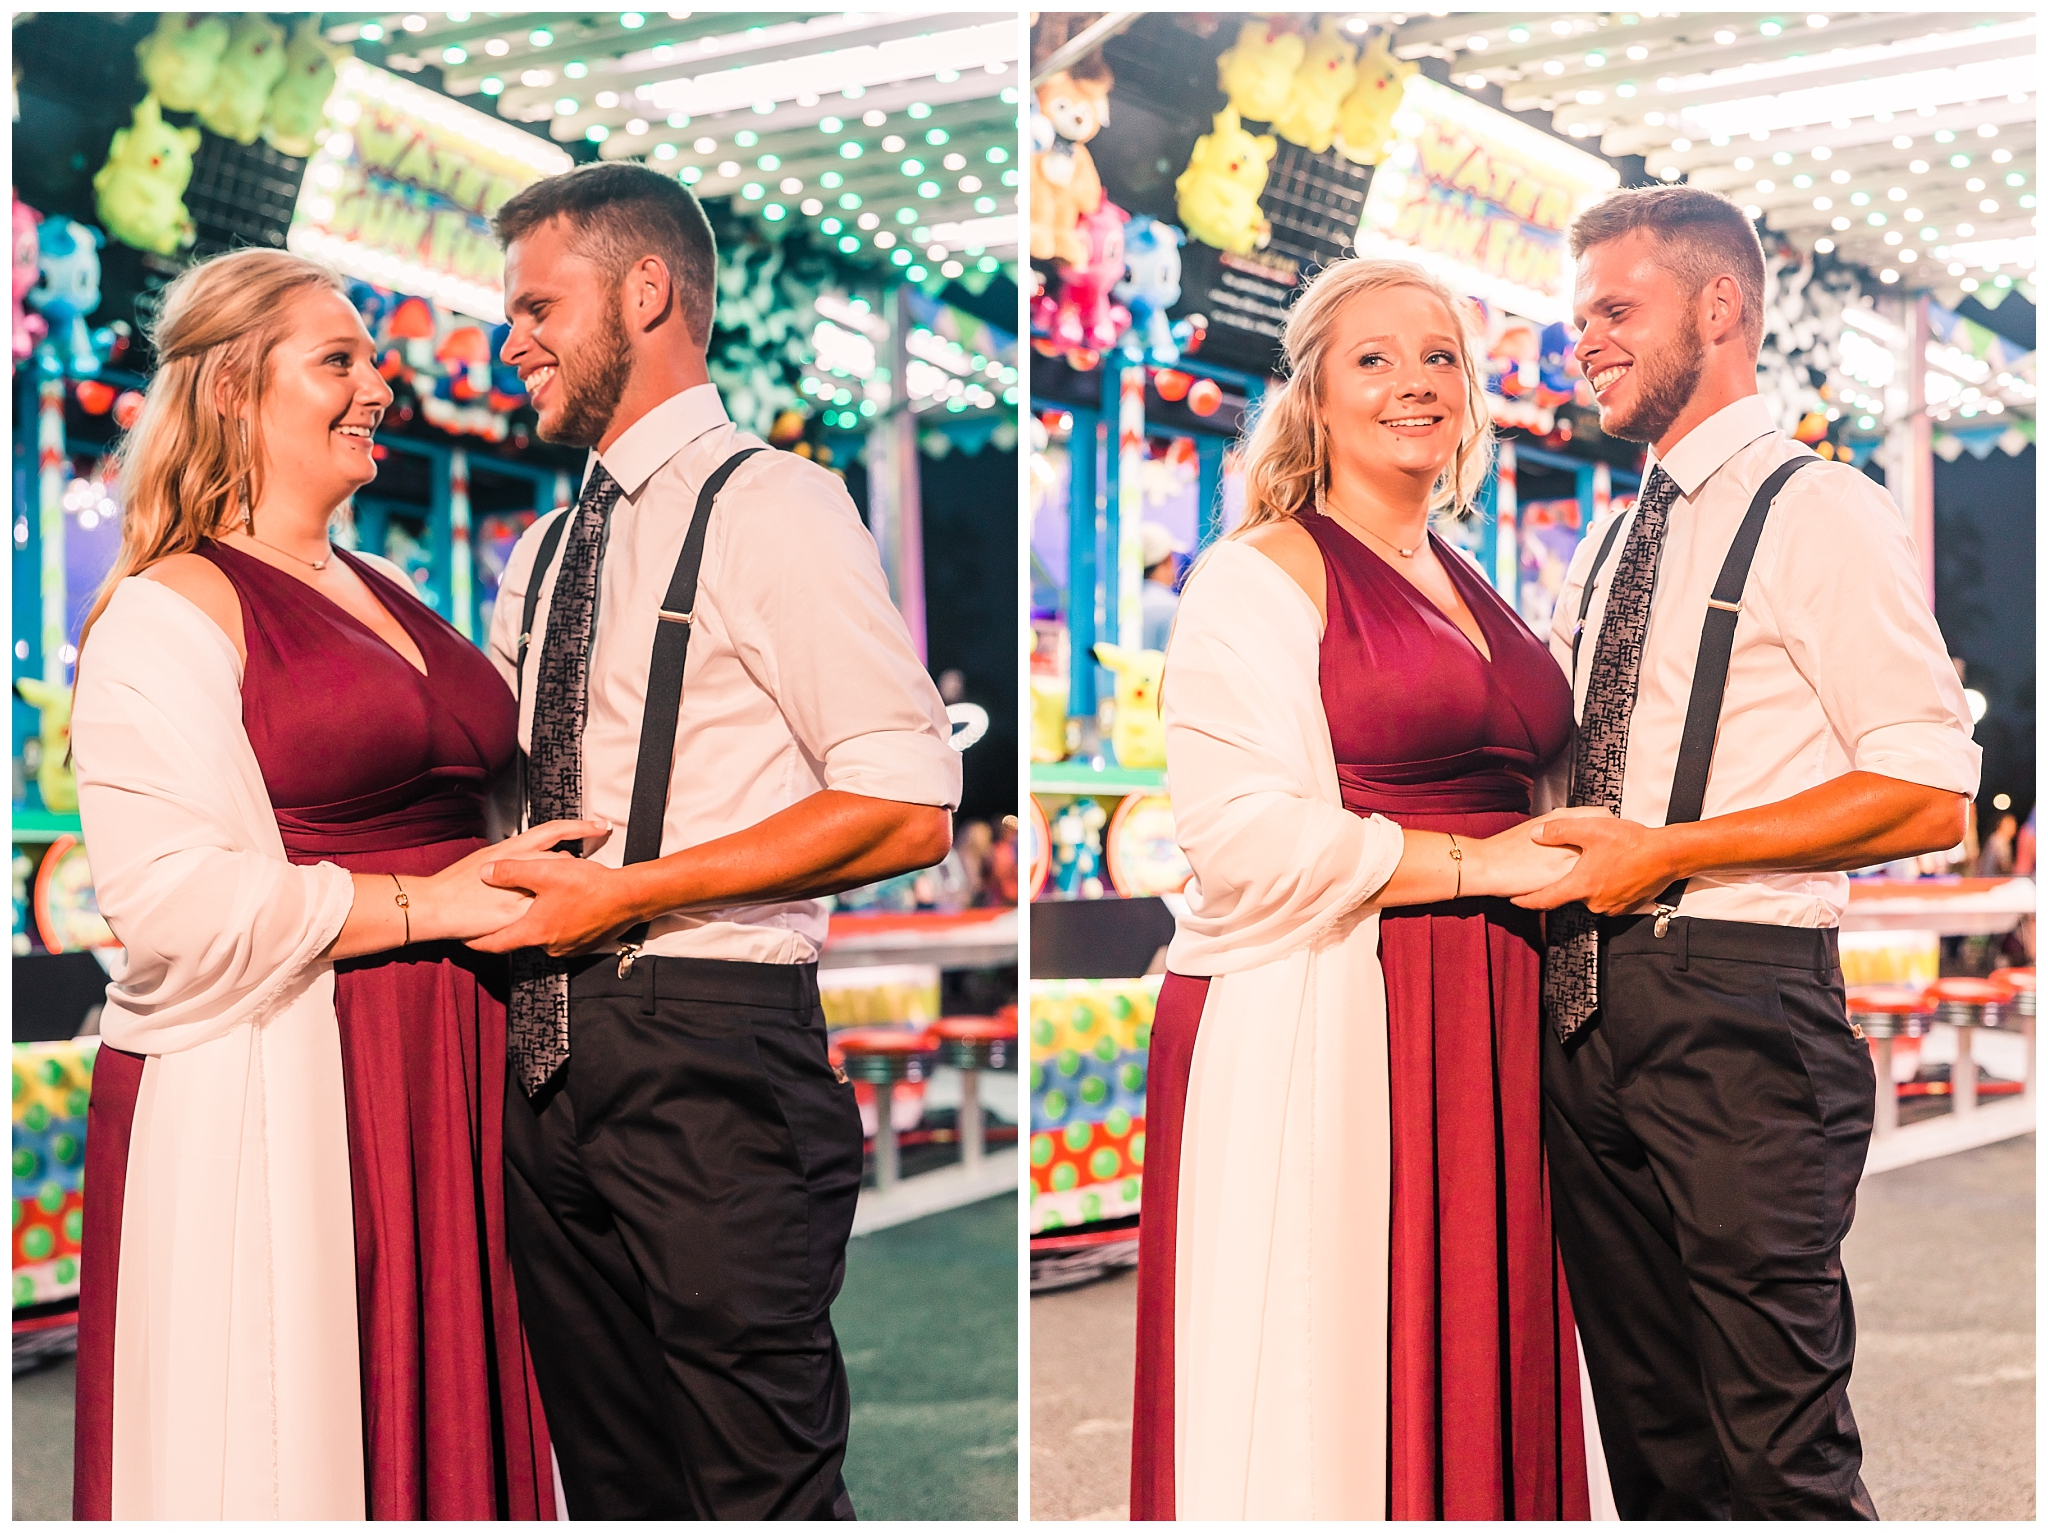 lafayette indiana sunset engagement photography county fair adventure new adventure productions_0692.jpg